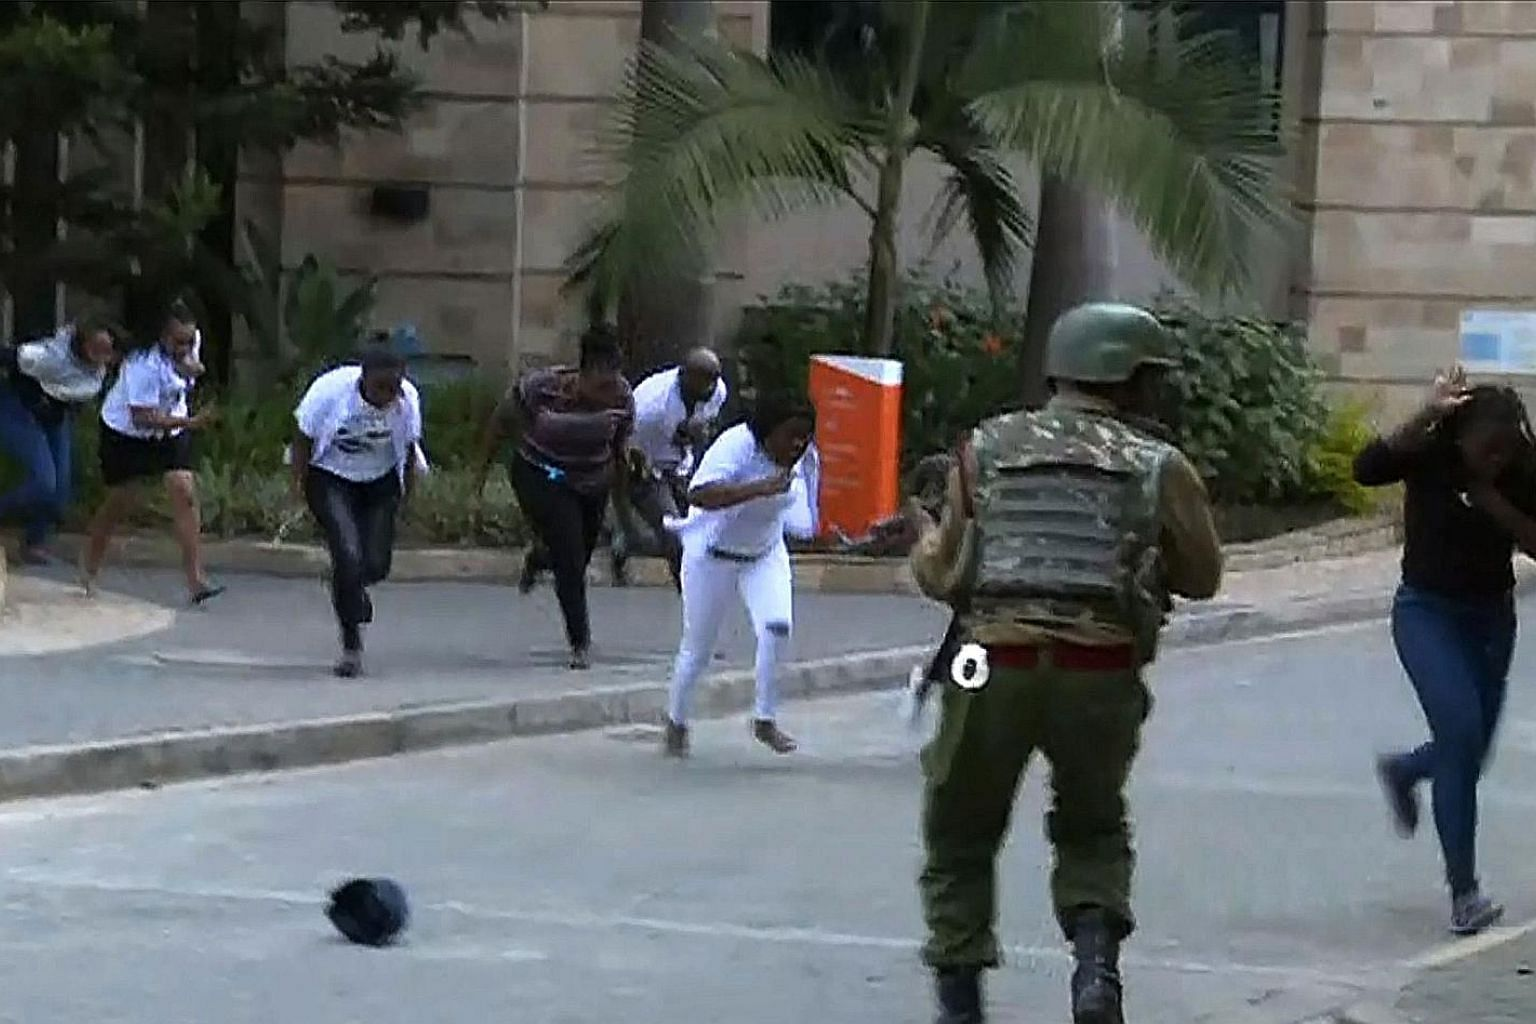 Above: TV footage shows people fleeing the scene amid a gunfight following a blast at the hotel and office complex in Nairobi. Left: People being evacuated from the hotel compound where explosions and gunshots were heard.